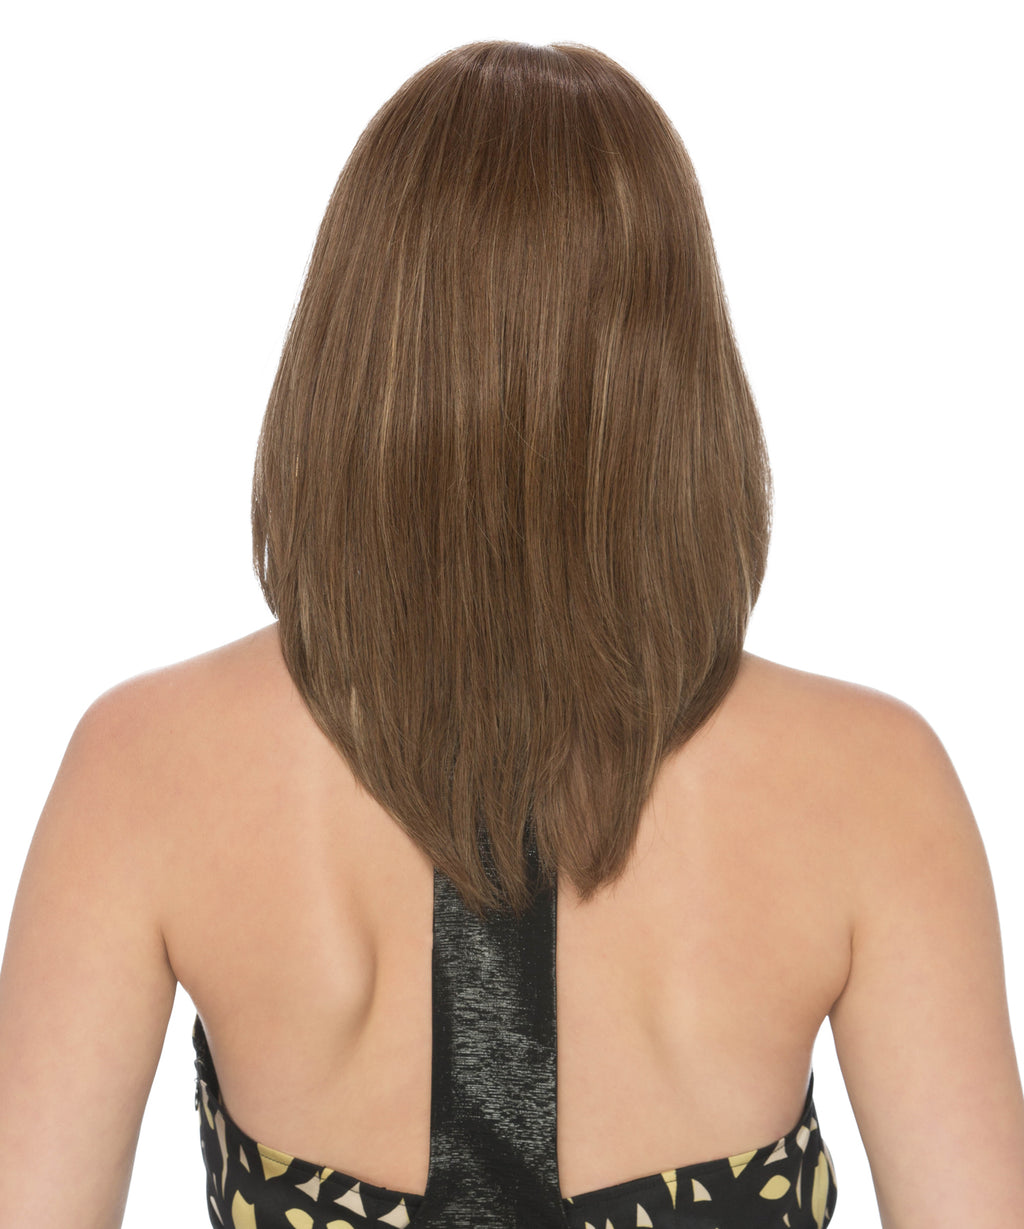 Celine -REMI HUMAN HAIR | MONO TOP WITH 100% HAND-TIED BACK